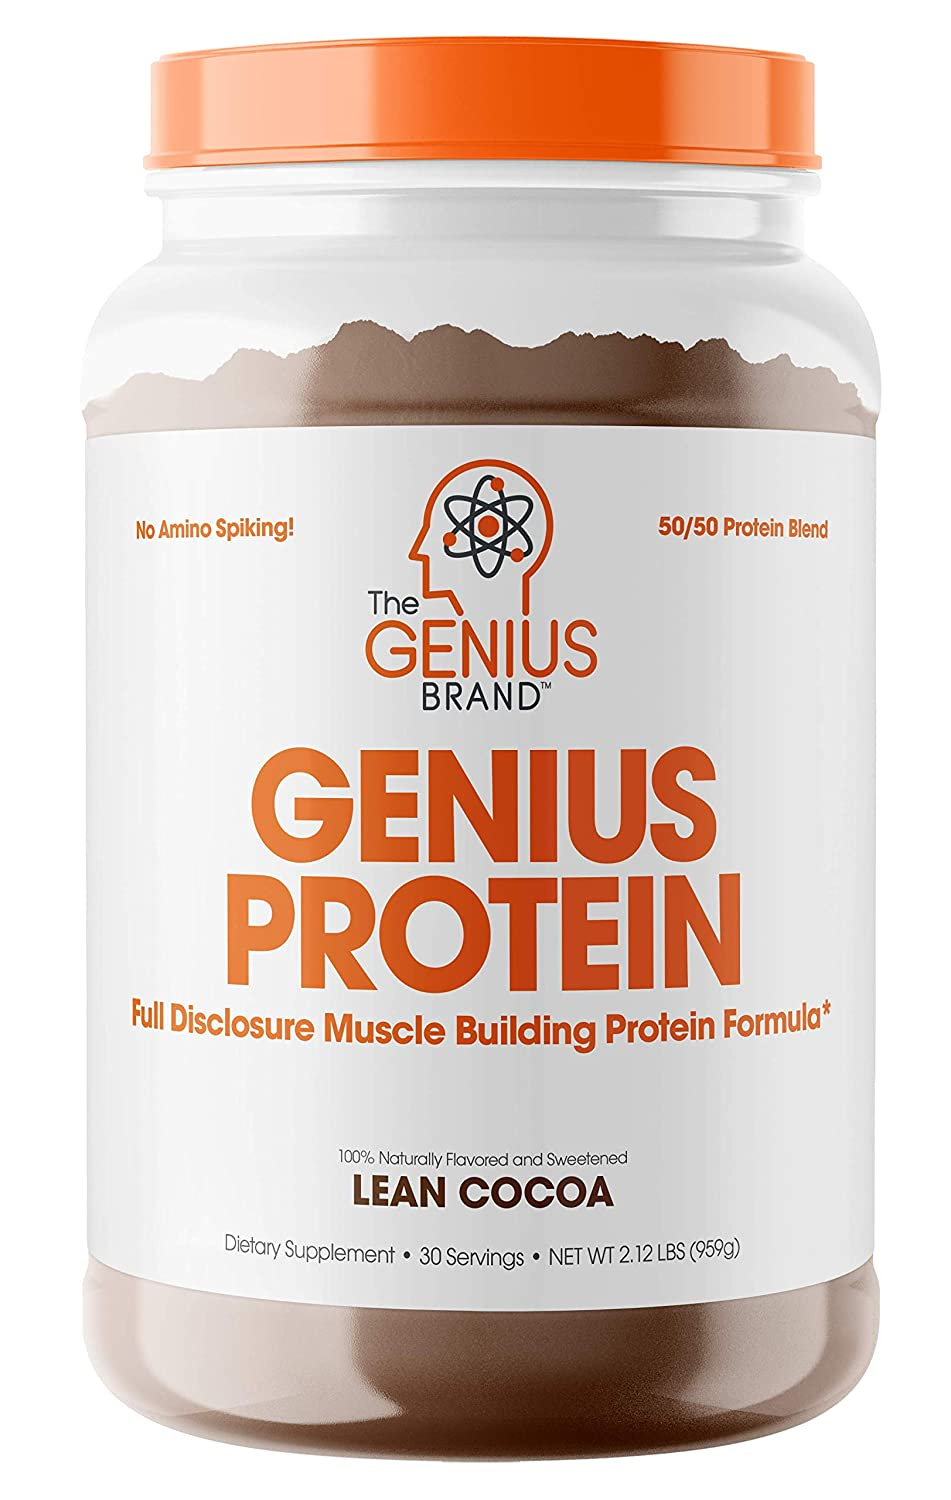 Genius Protein Powder – Natural Whey Protein Isolate Micellar Casein Lean Muscle Building Blend, Grass Fed Post Workout Strength Builder for Weight Loss and Strength Gains, Lean Cocoa, 2 LB